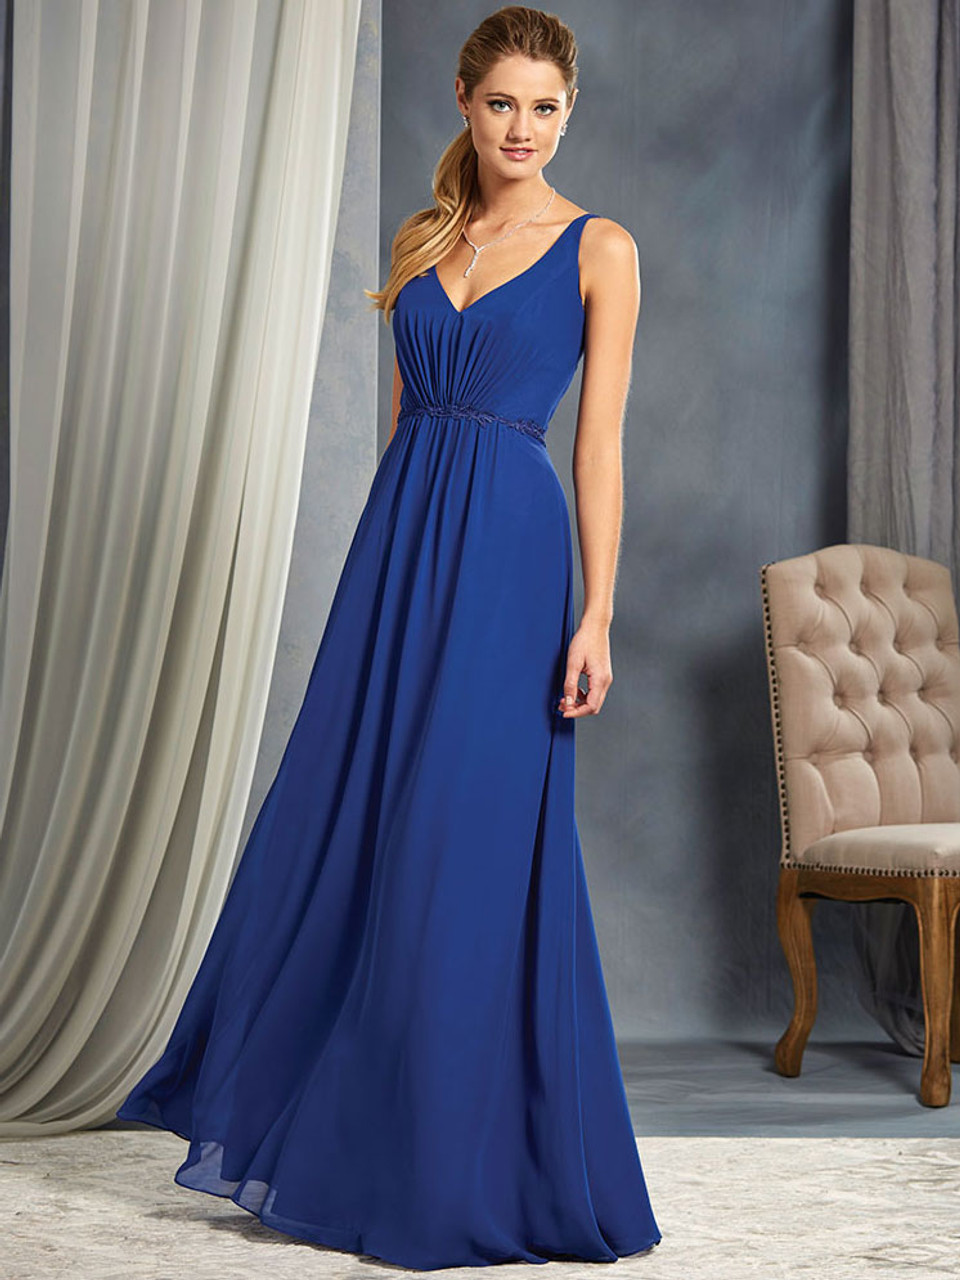 9083c118a7 Alfred Angelo 7366L Chiffon Floor Length Bridesmaid Dress ...